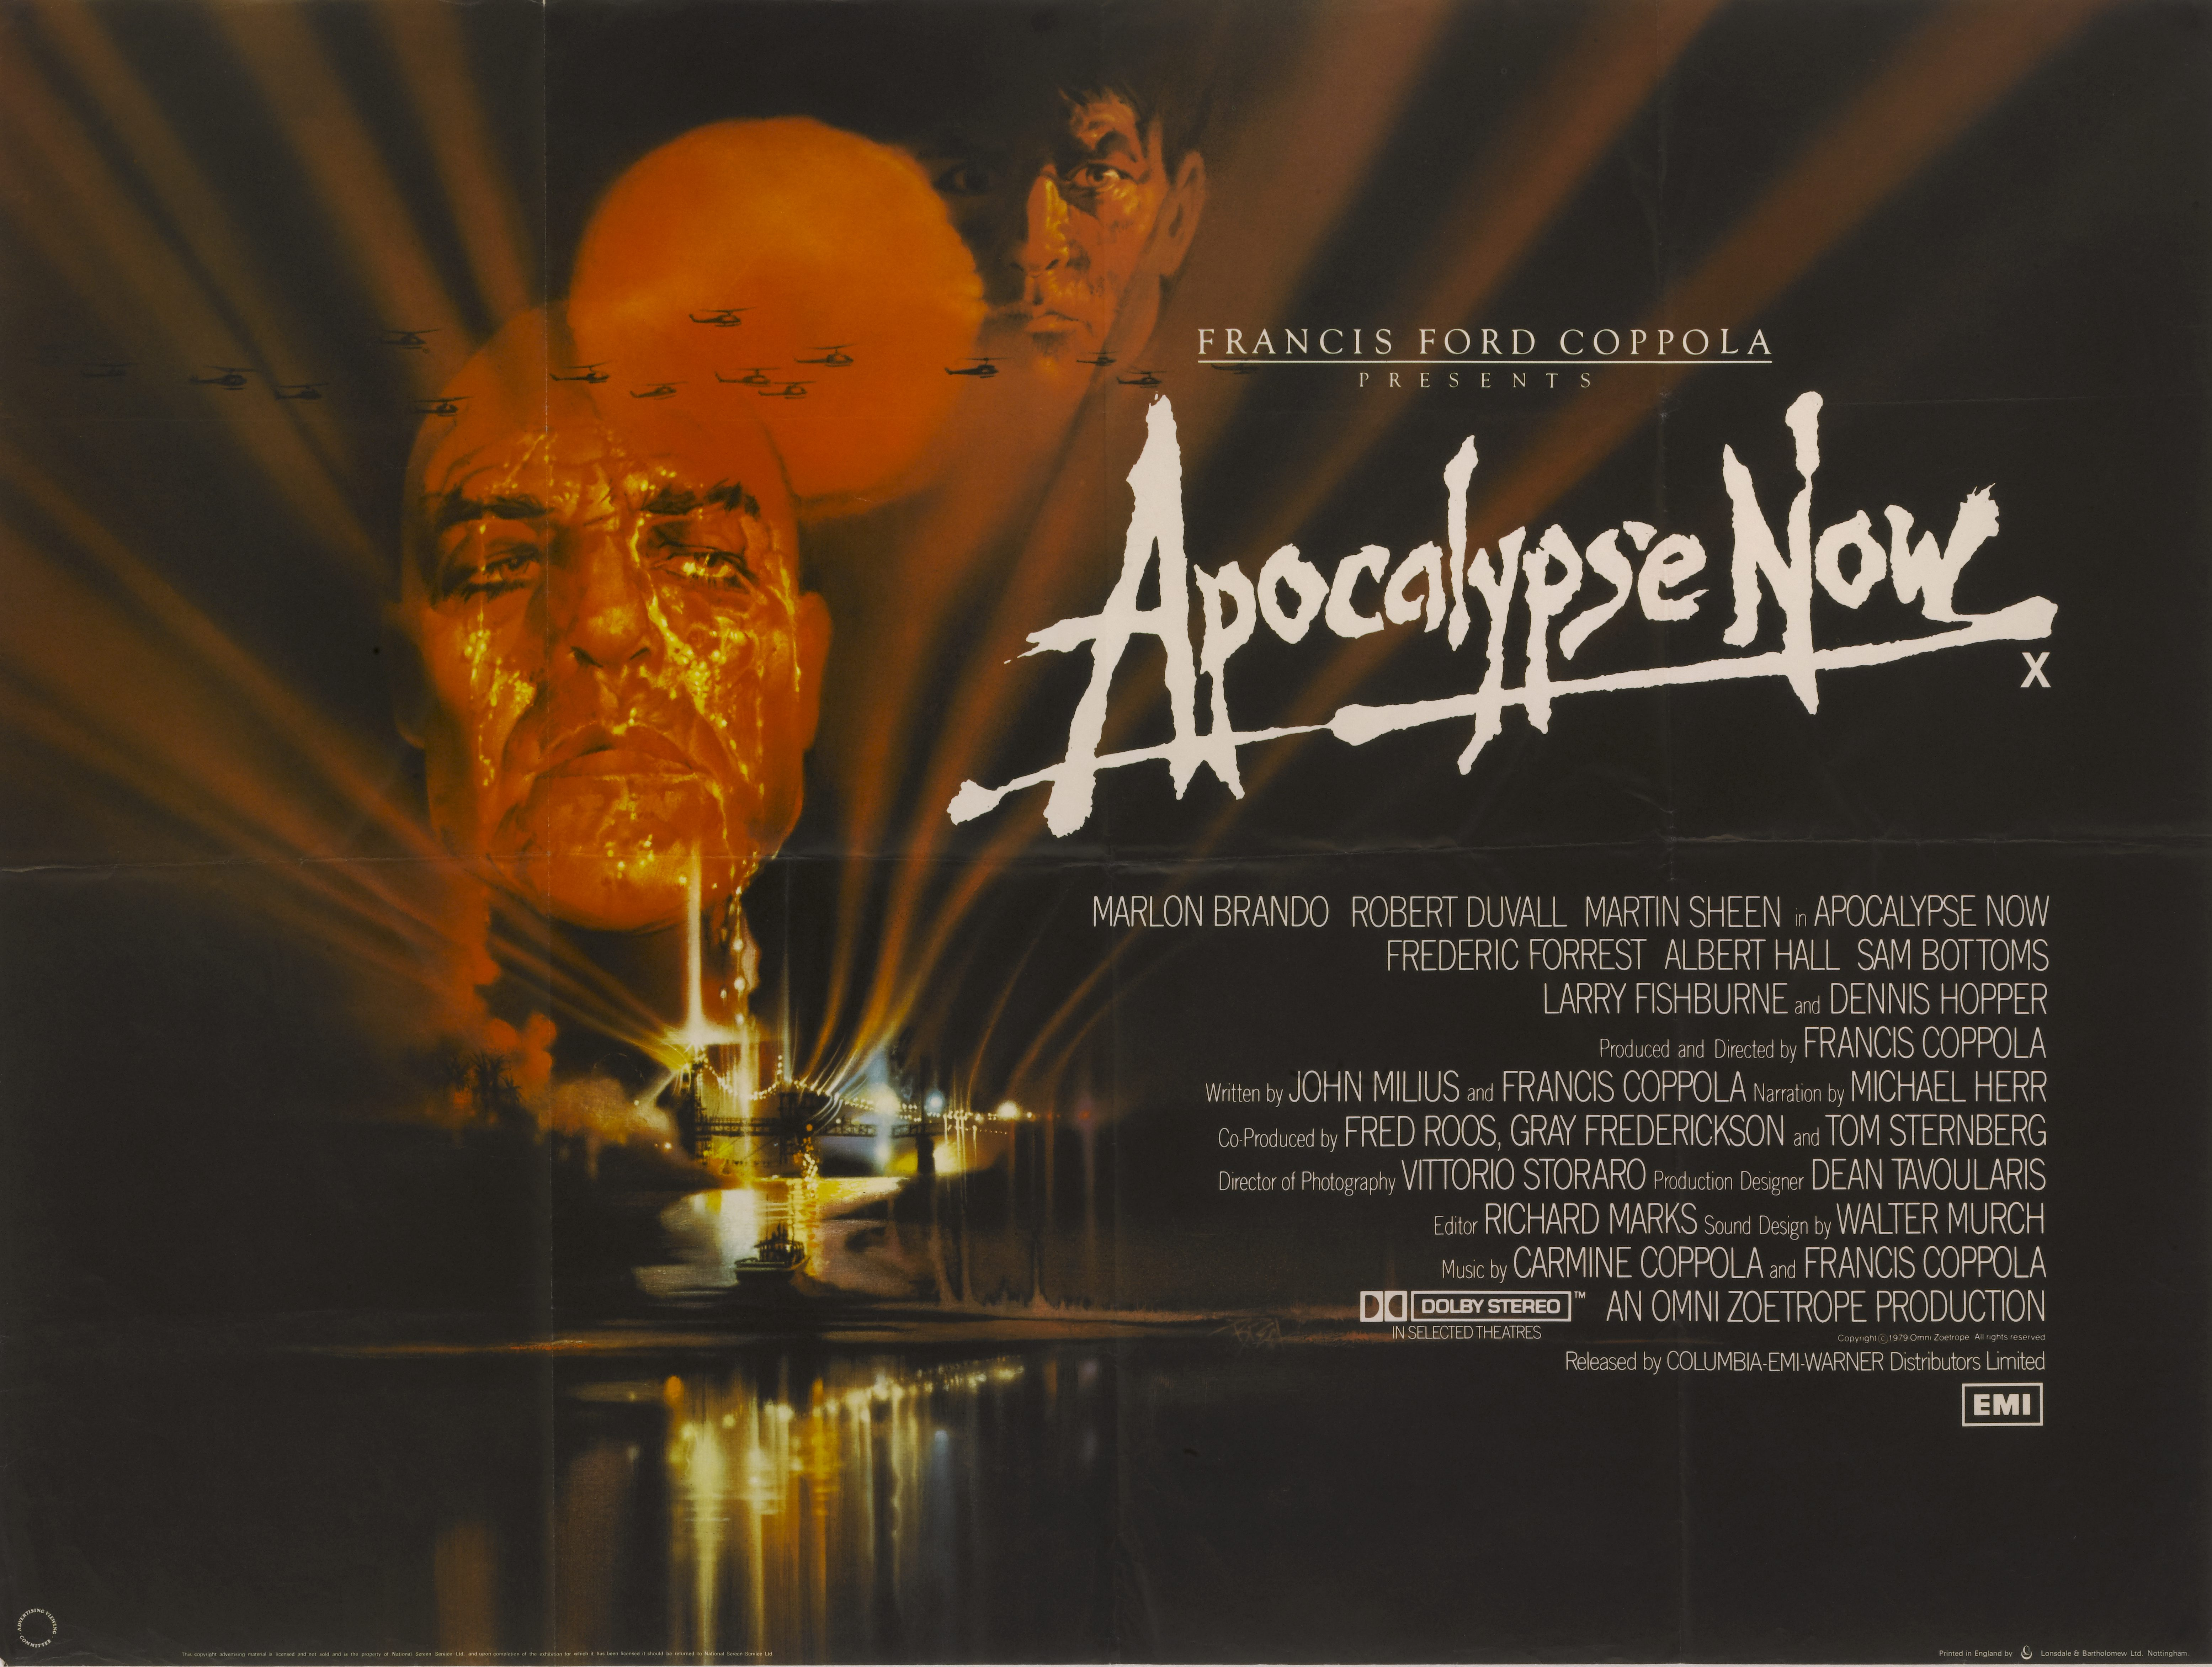 A movie poster signed by Francis Ford Coppola  for his 1979 Vietnam War drama 'Apocalypse Now' starring Marlon Brando and Martin Sheen.